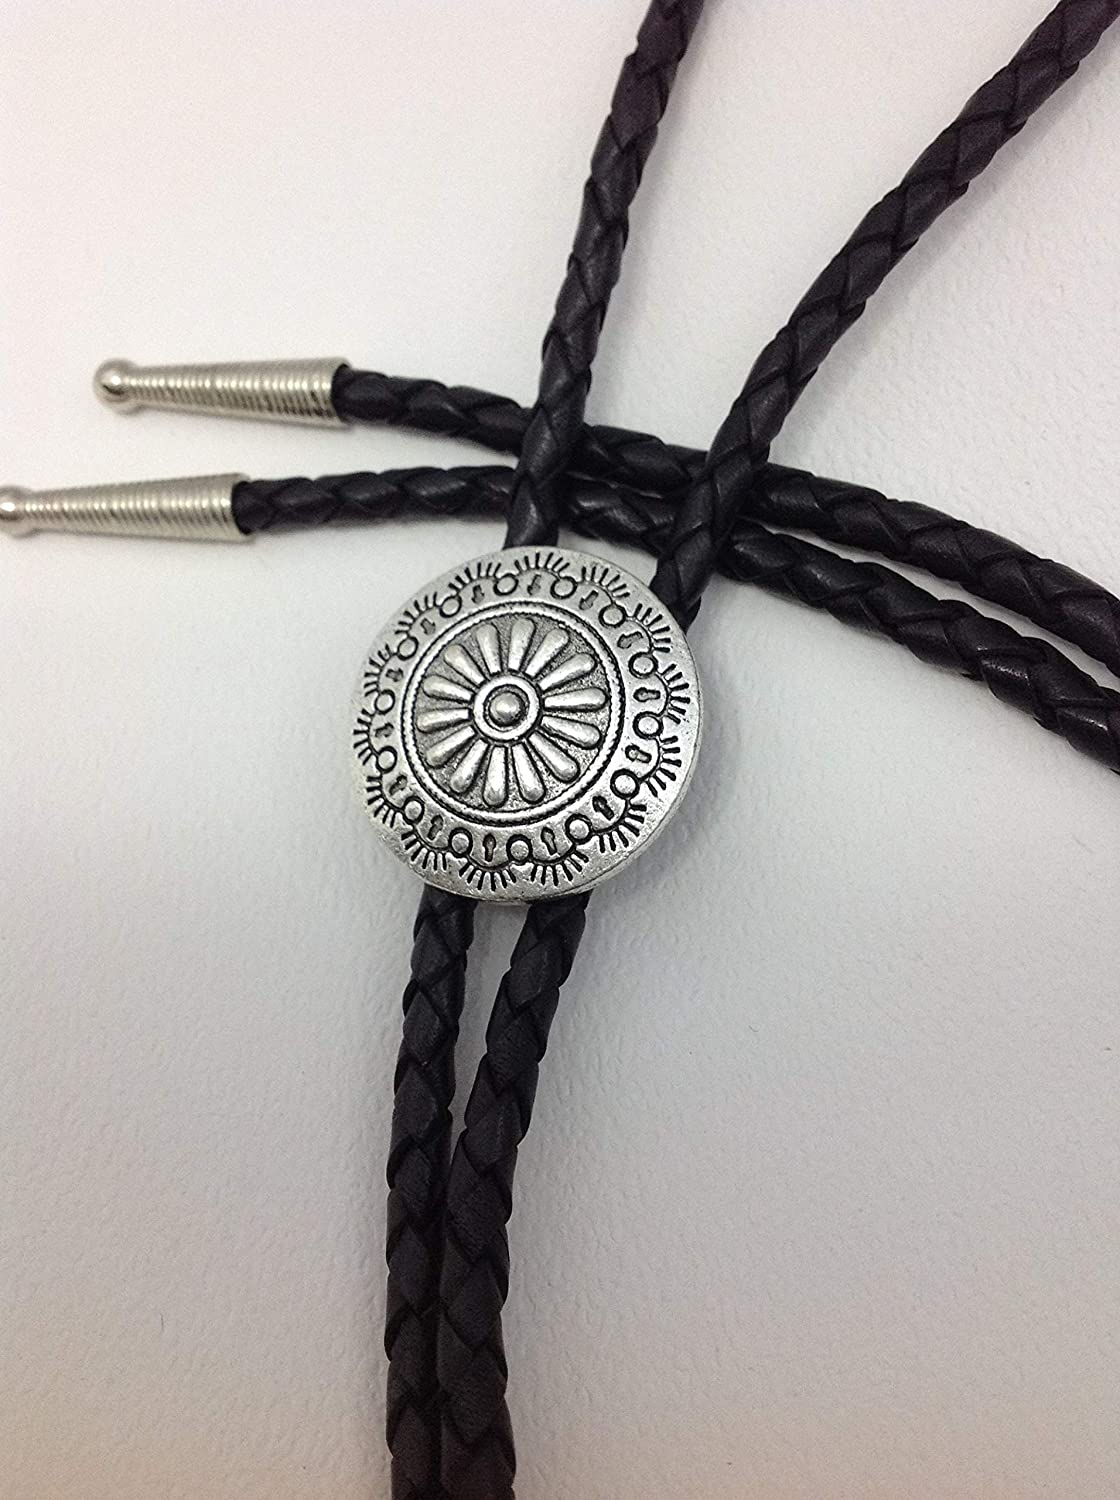 Bolo Super intense SALE Tie Western Bootlace Concho Cowboy Necklace Style 2021 new